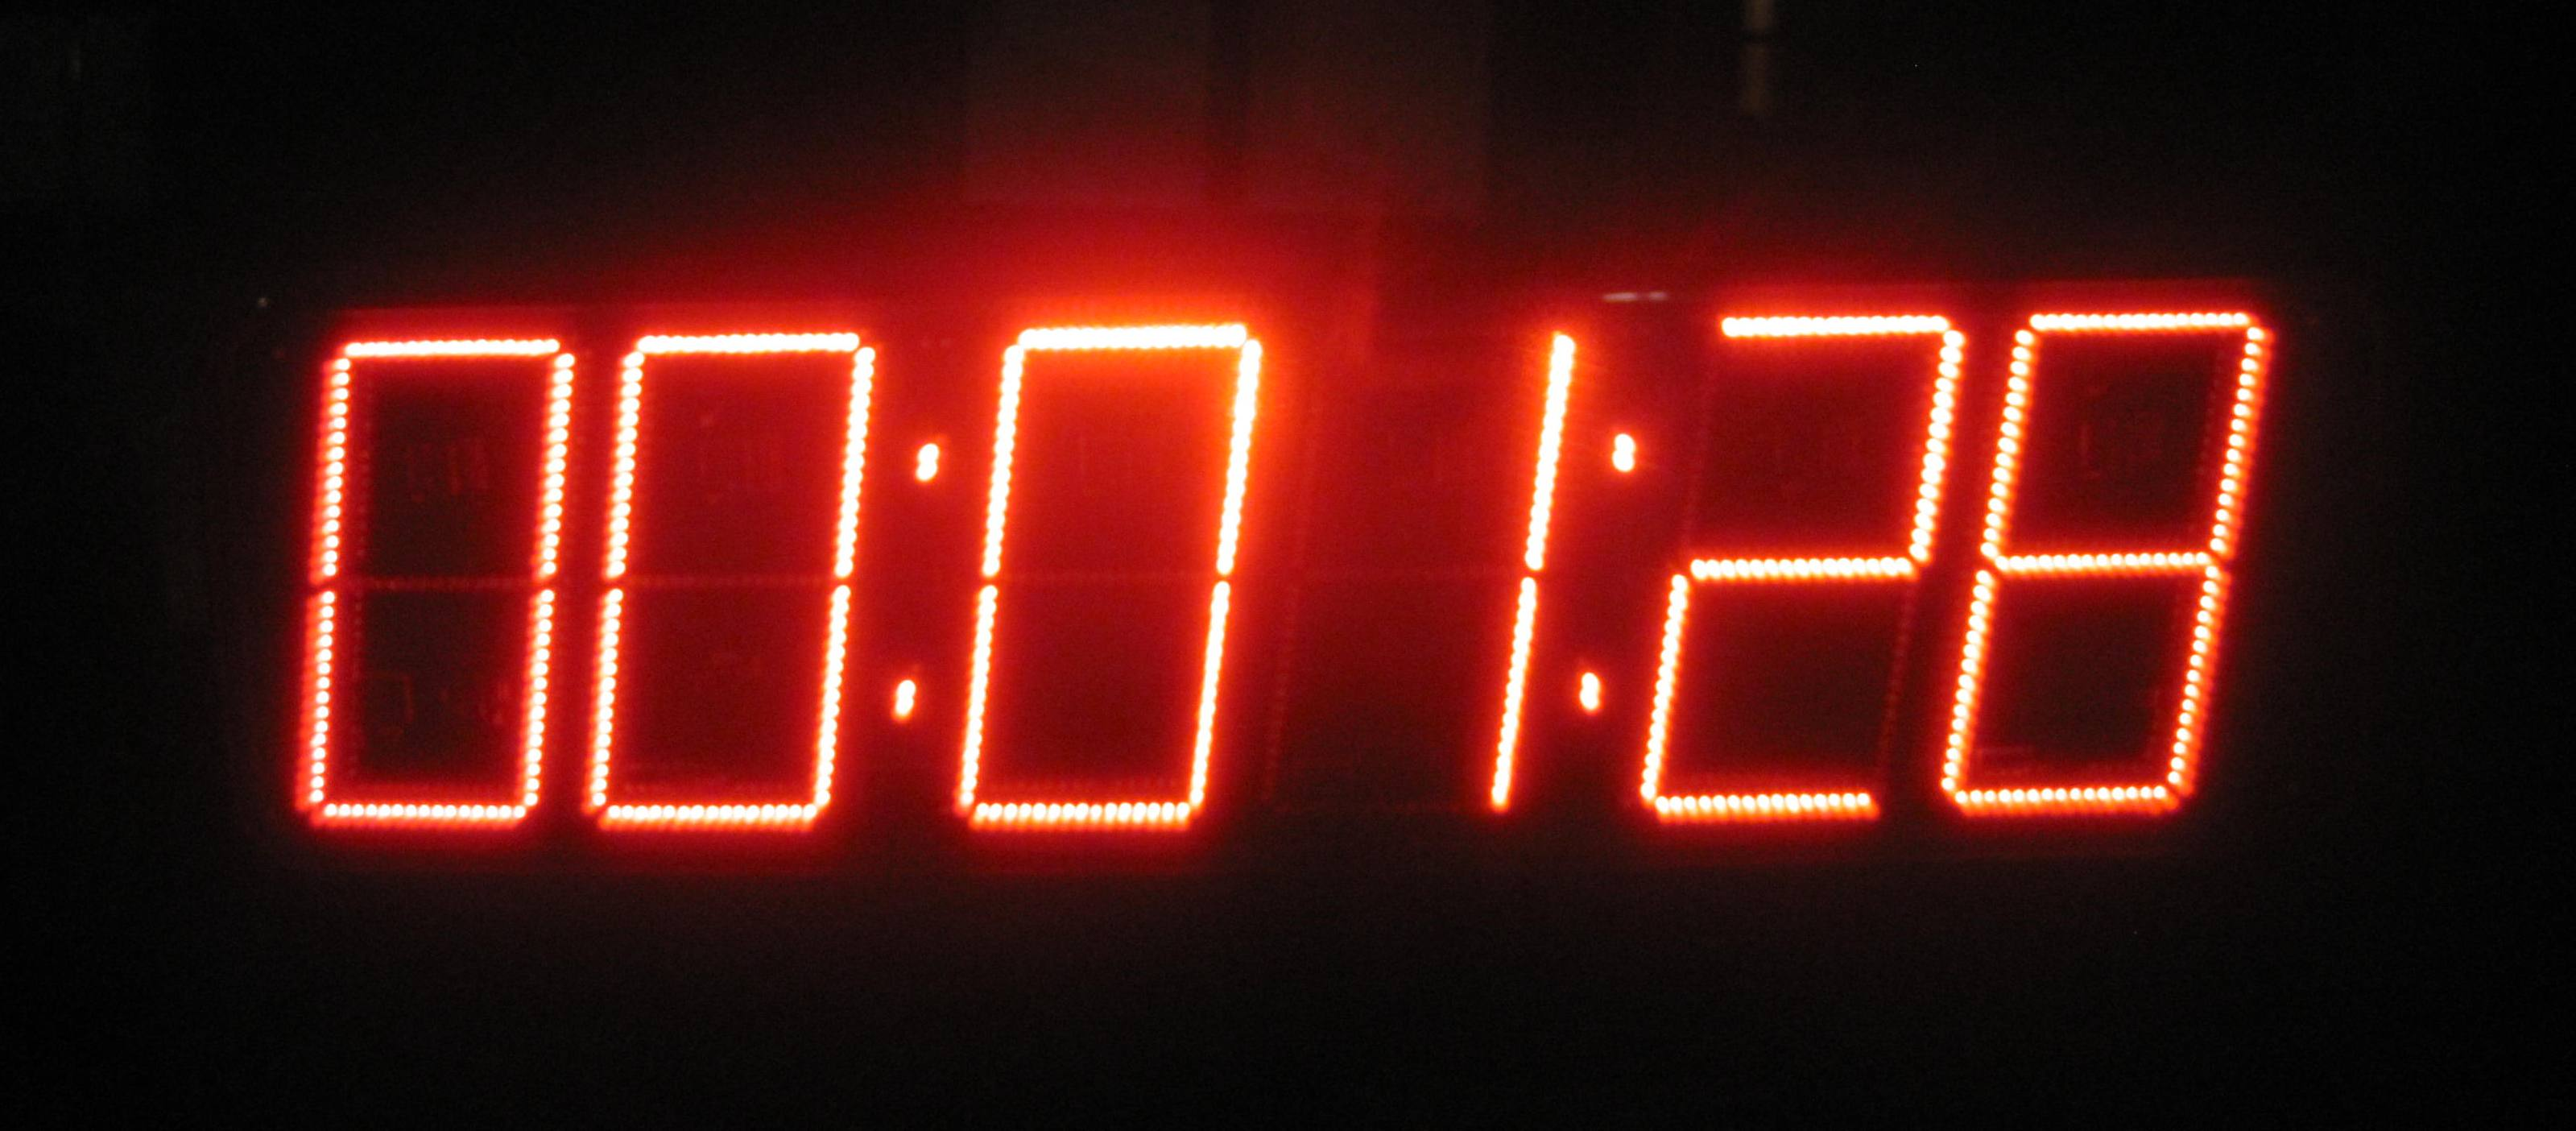 Race Clock - Sports Equipment Hire - Shoot4Goal